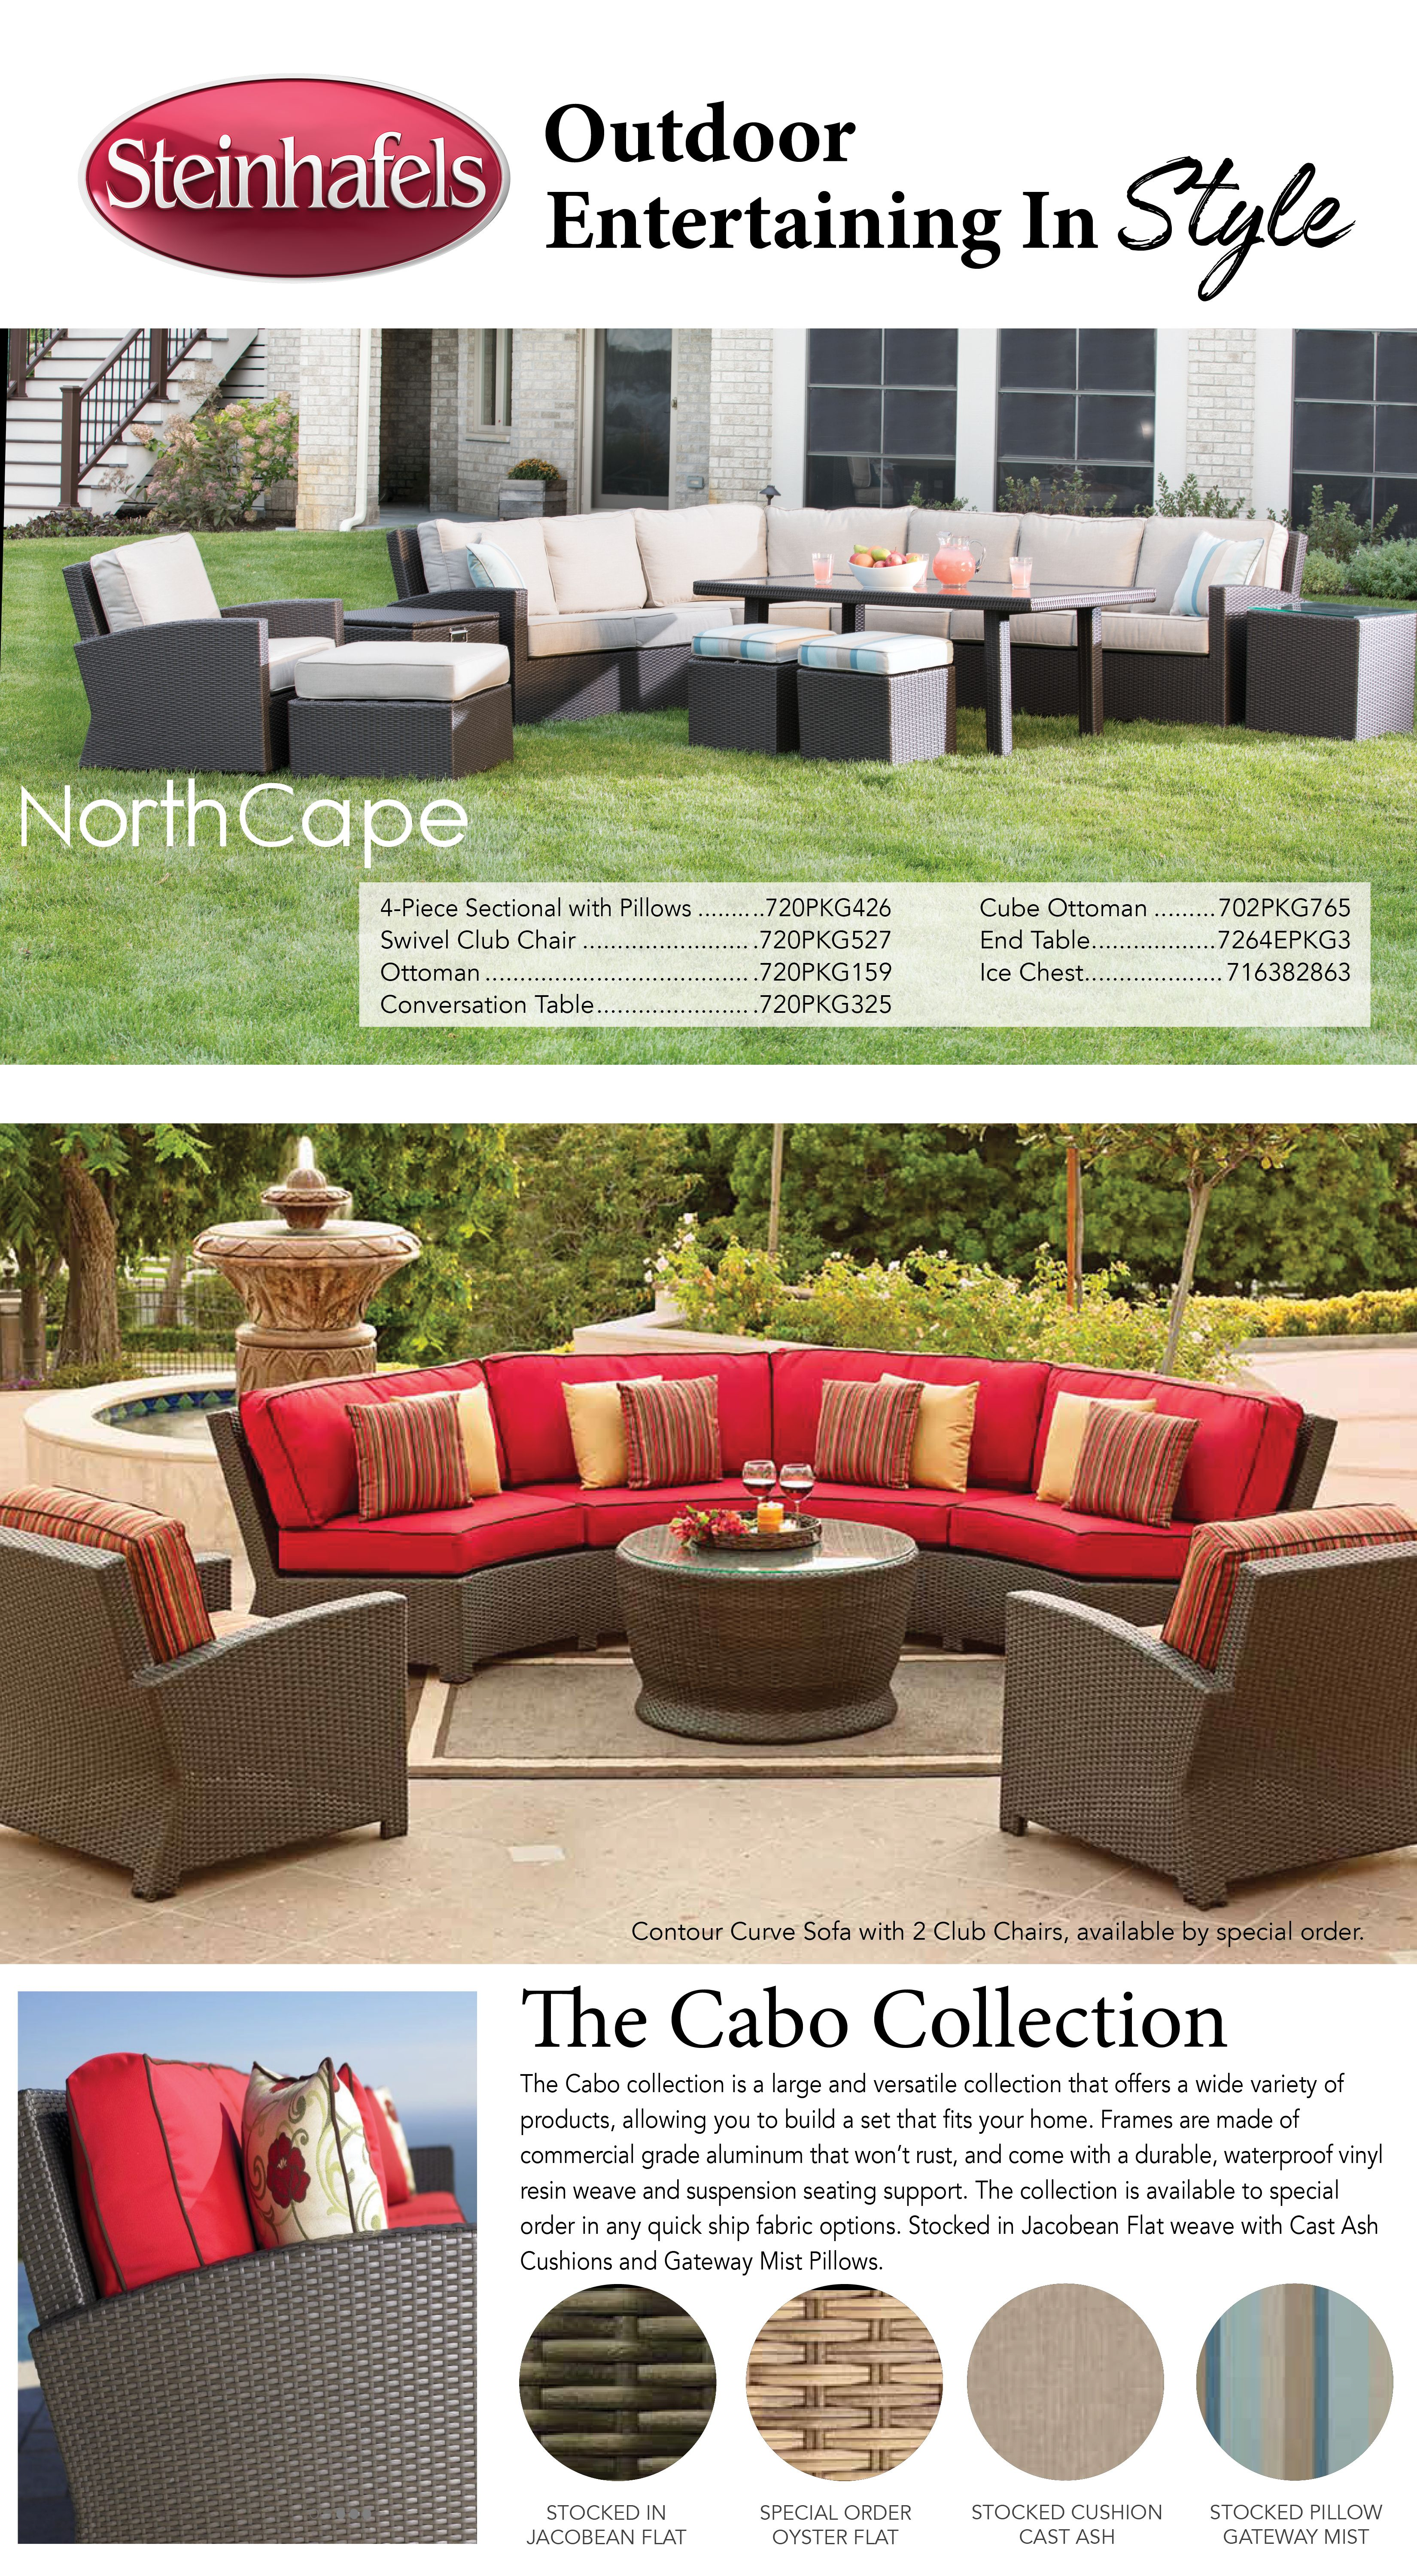 steinhafels northcape patio farm house living room outdoor furniture sets patio